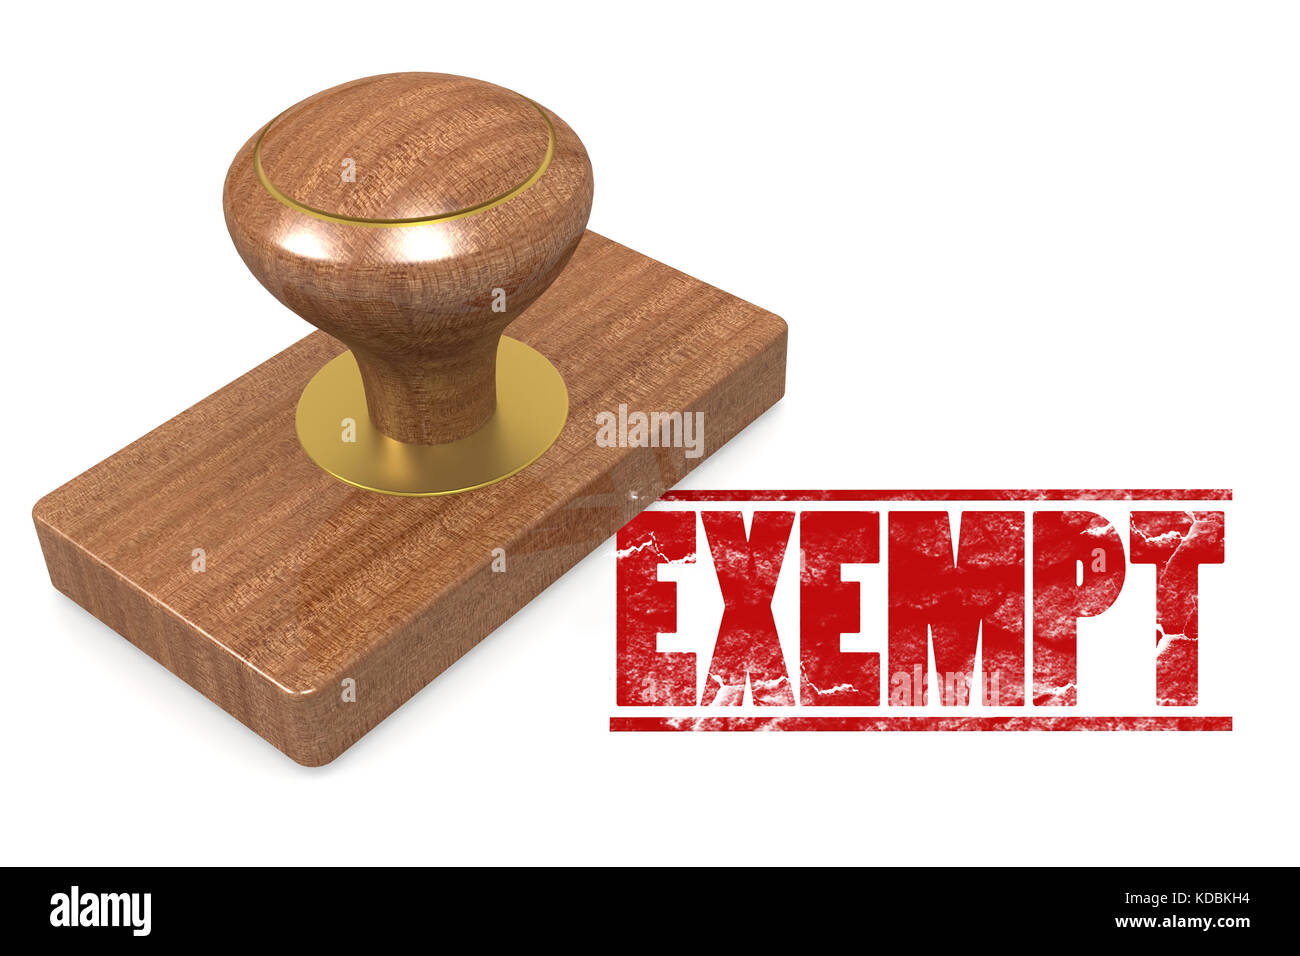 Exempt wooded seal stamp image with hi-res rendered artwork that could be used for any graphic design. - Stock Image